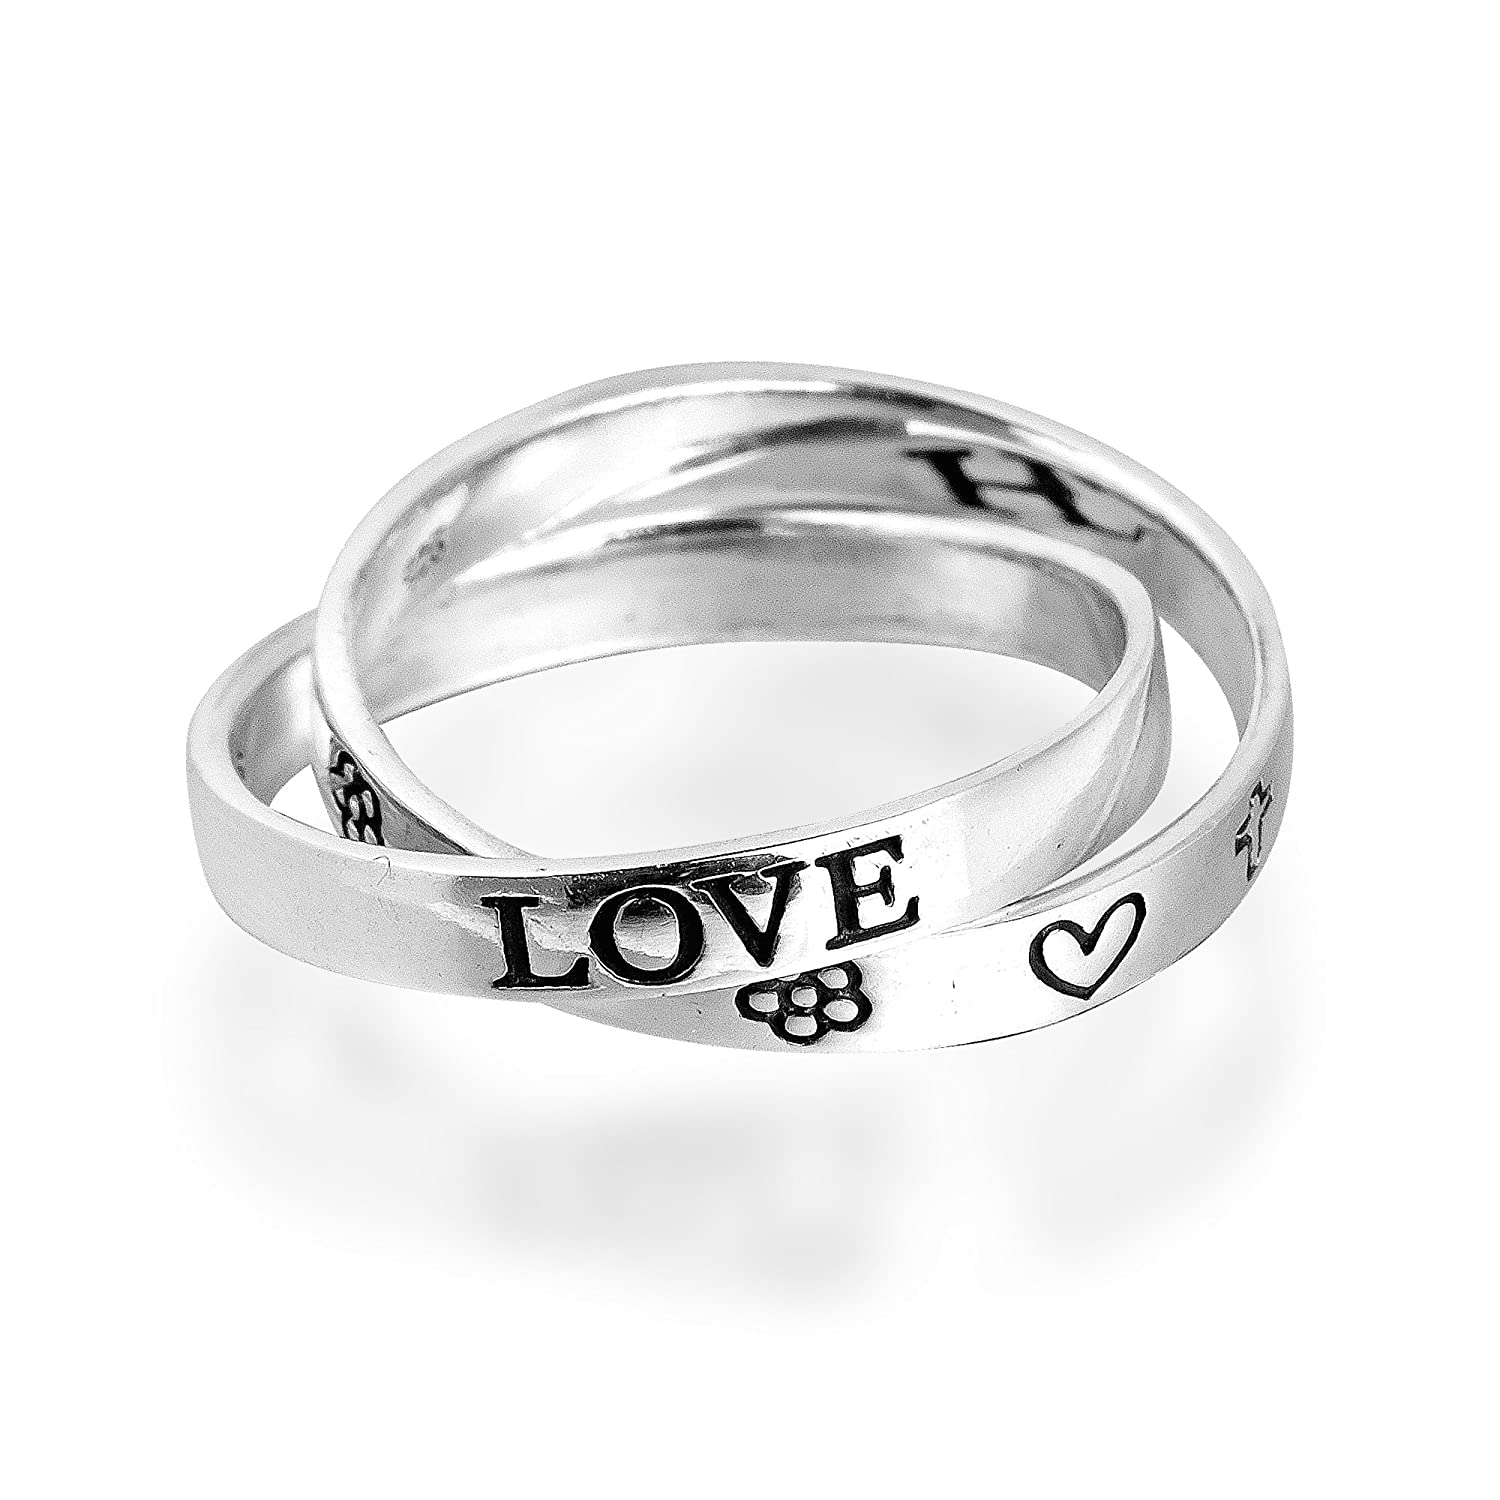 'Love Hope Faith' Interconnected Double Band .925 Sterling Silver Ring